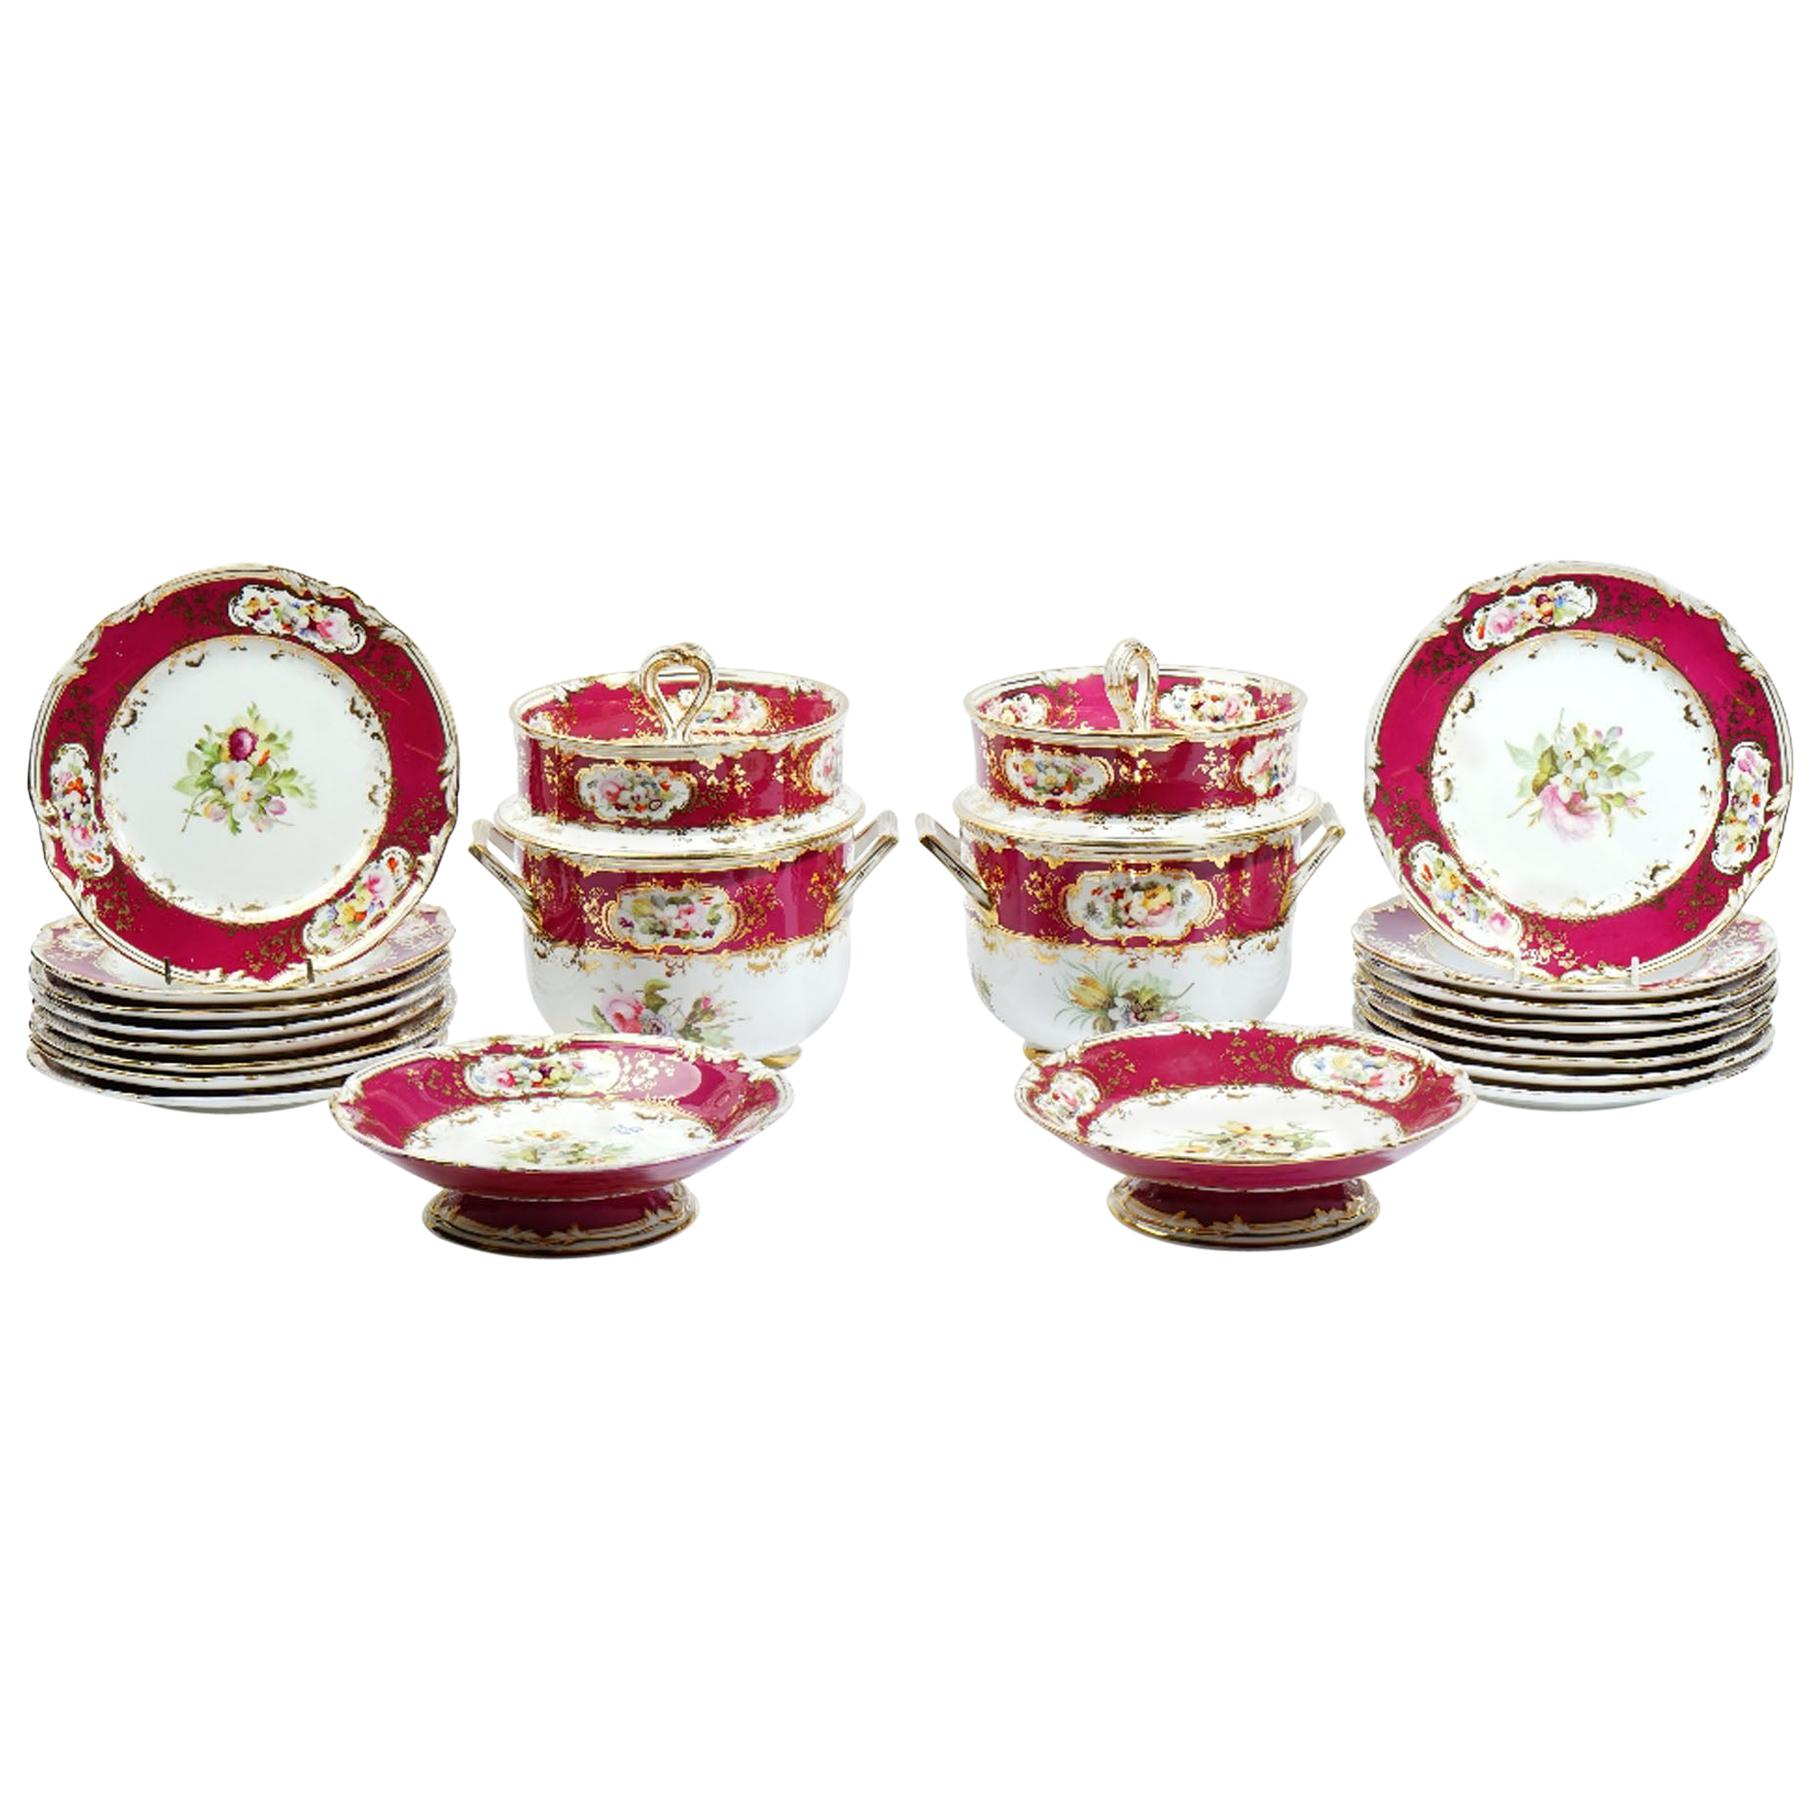 English Royal Red Floral Coalport Dessert Service, circa 1840 With Ice Pails